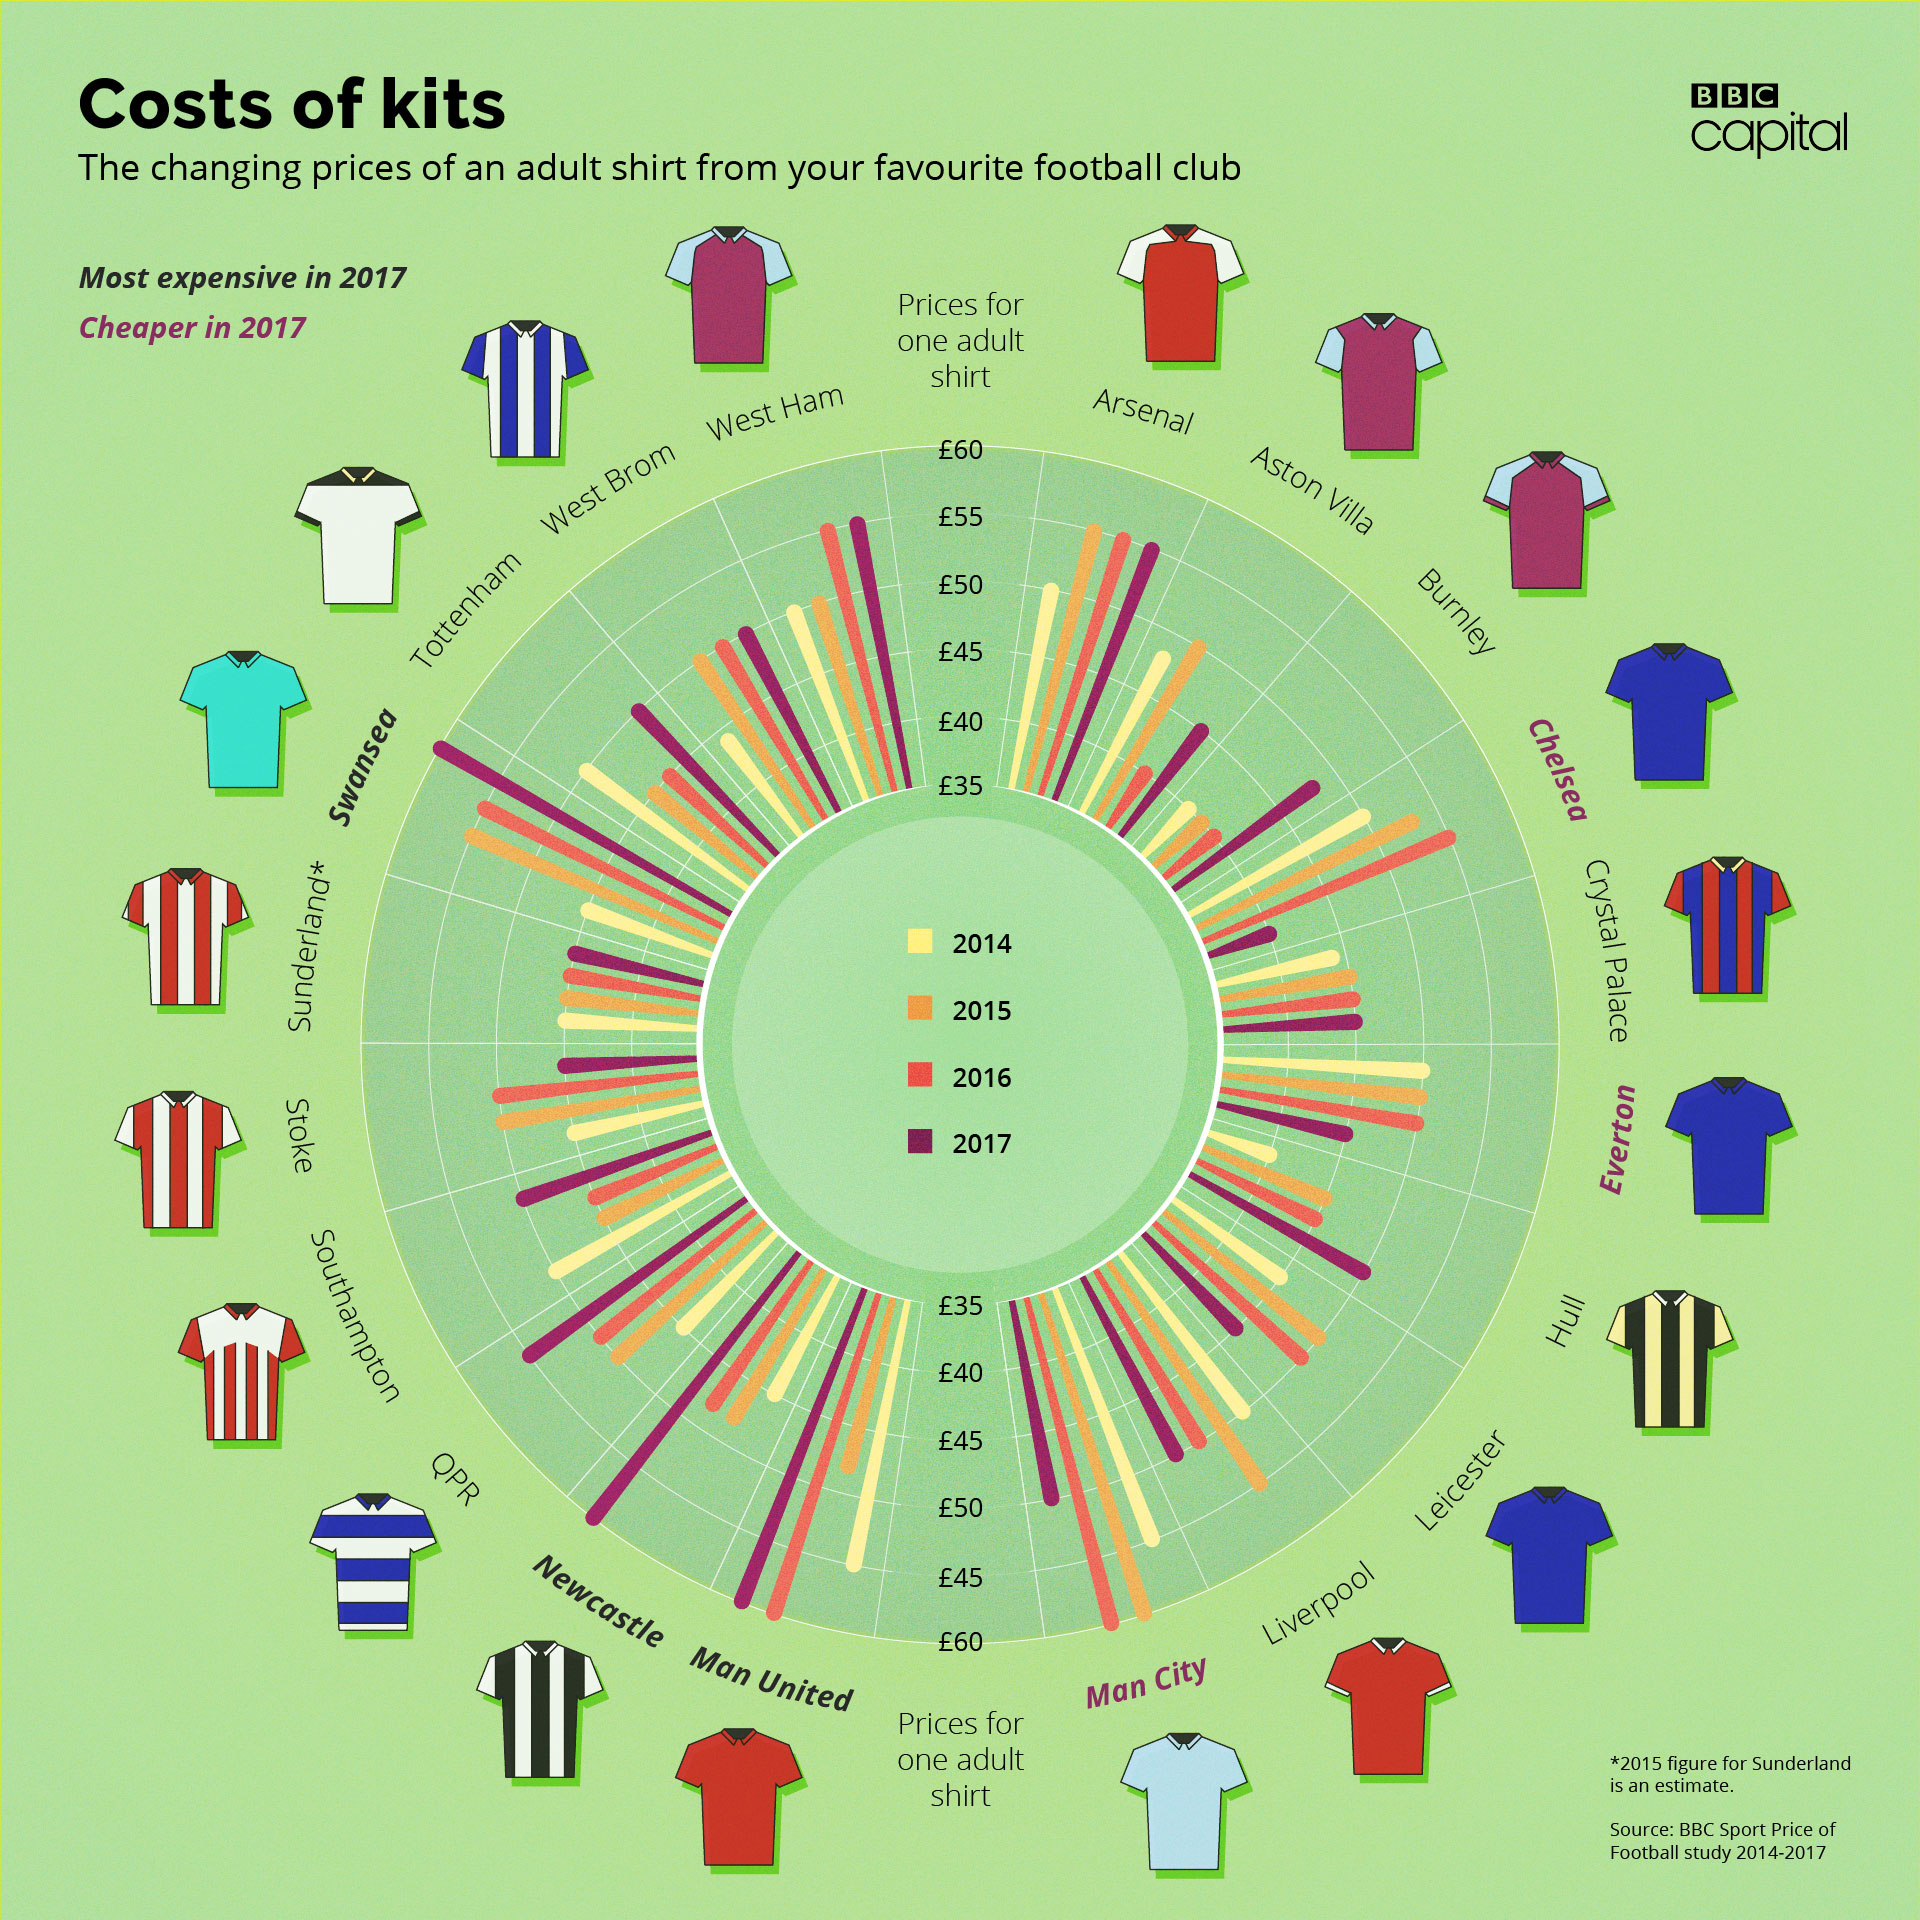 baf1c3caddf BBC - Capital - The costs of swapping football shirts